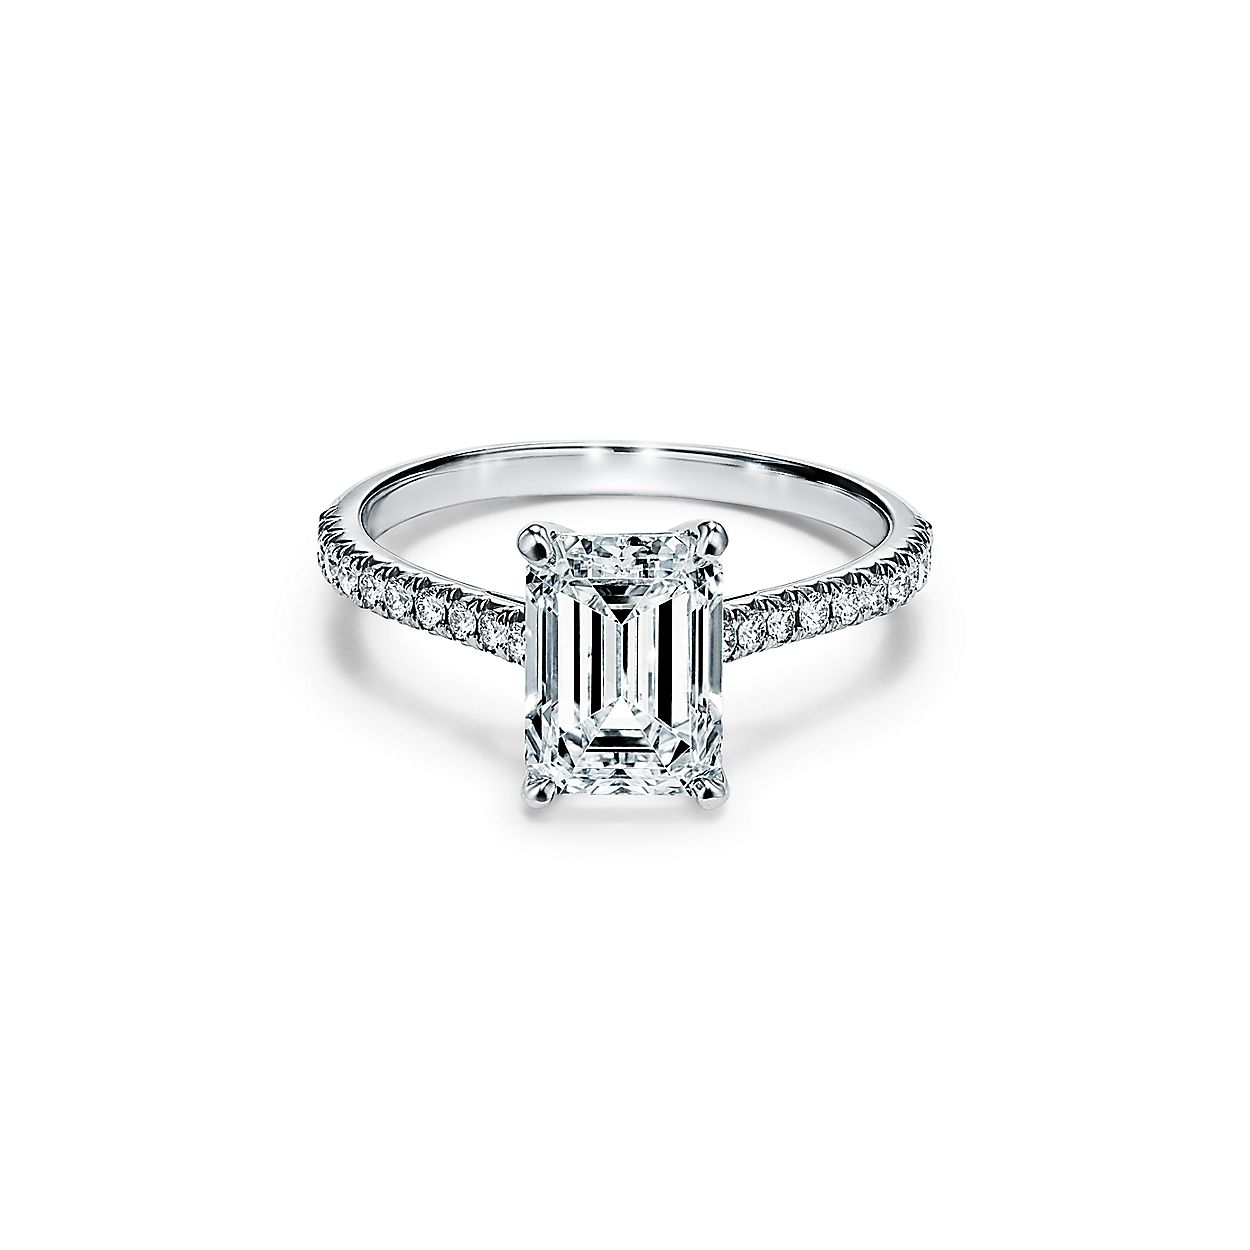 Tiffany Wedding Rings.Tiffany Novo Emerald Cut Engagement Ring With A Pave Diamond Platinum Band